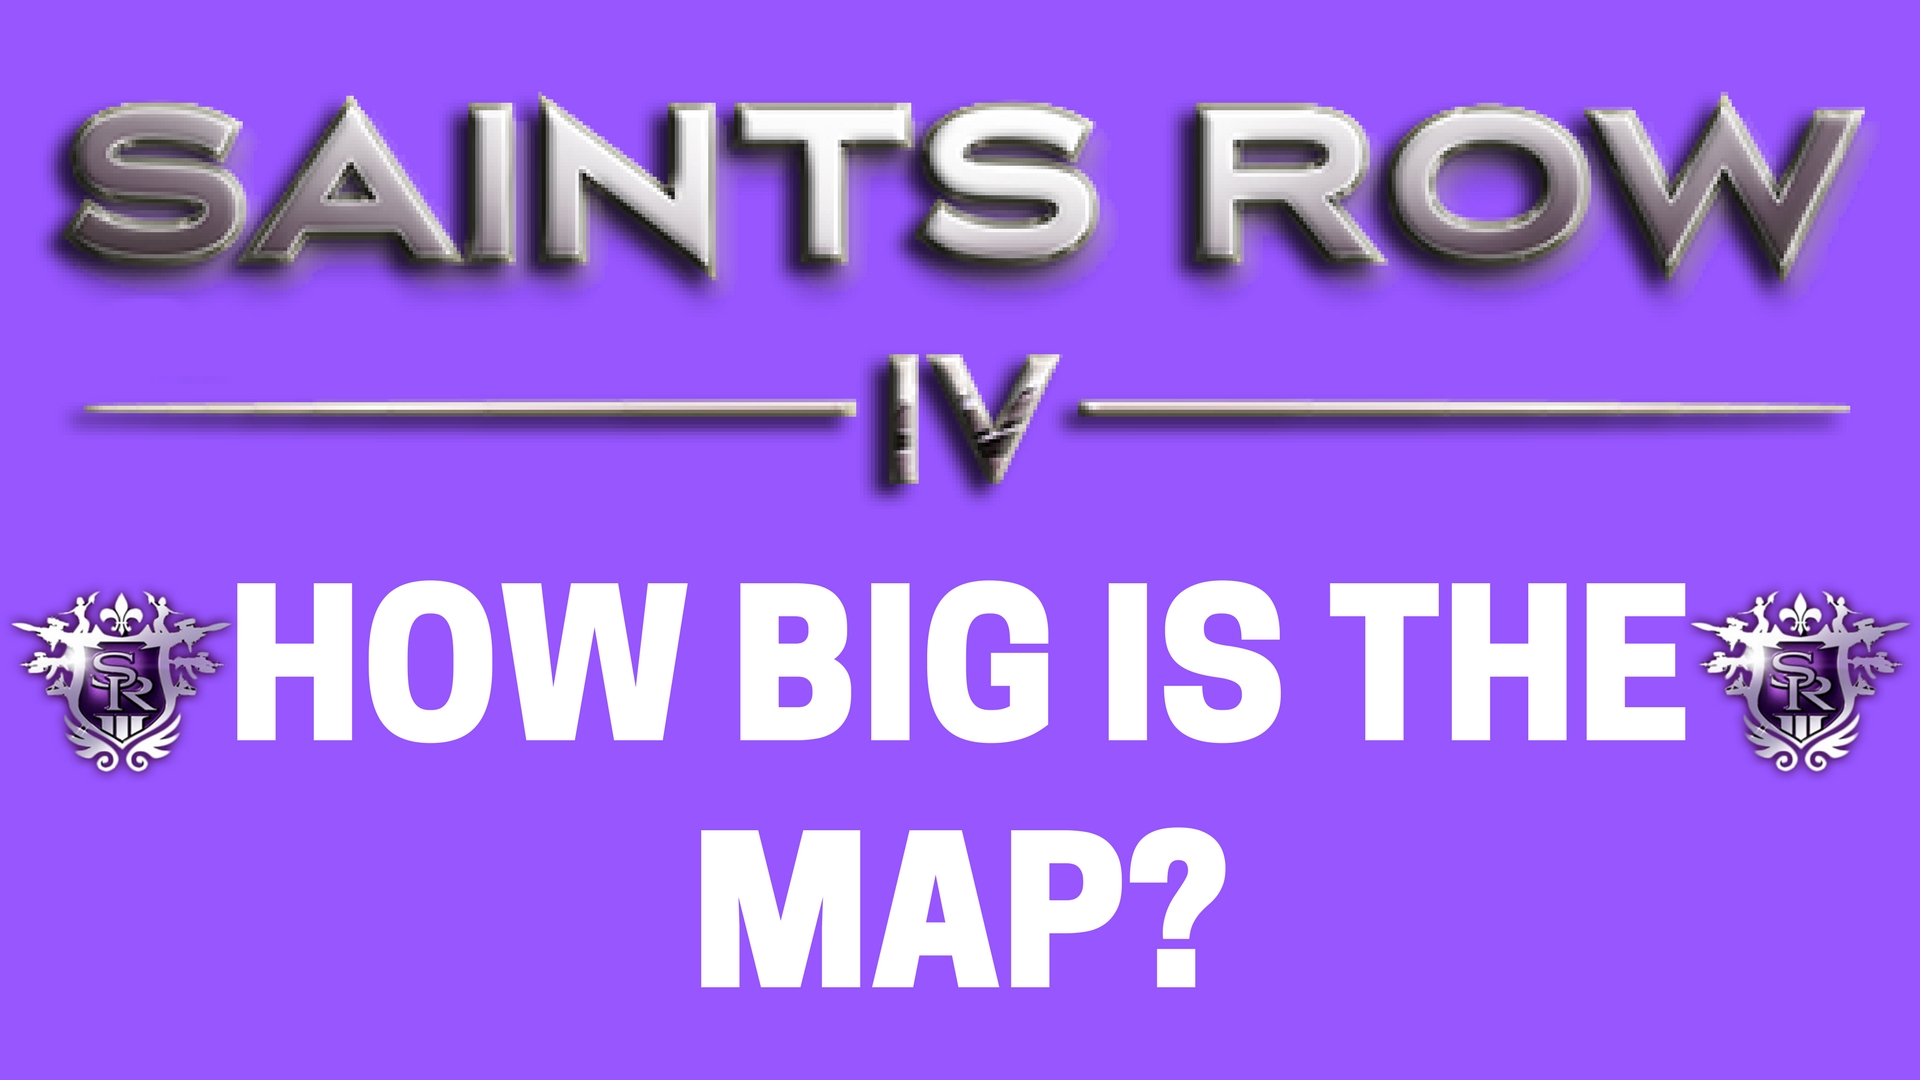 Saints Row IV - Walk Across the Map - How Big is the Map